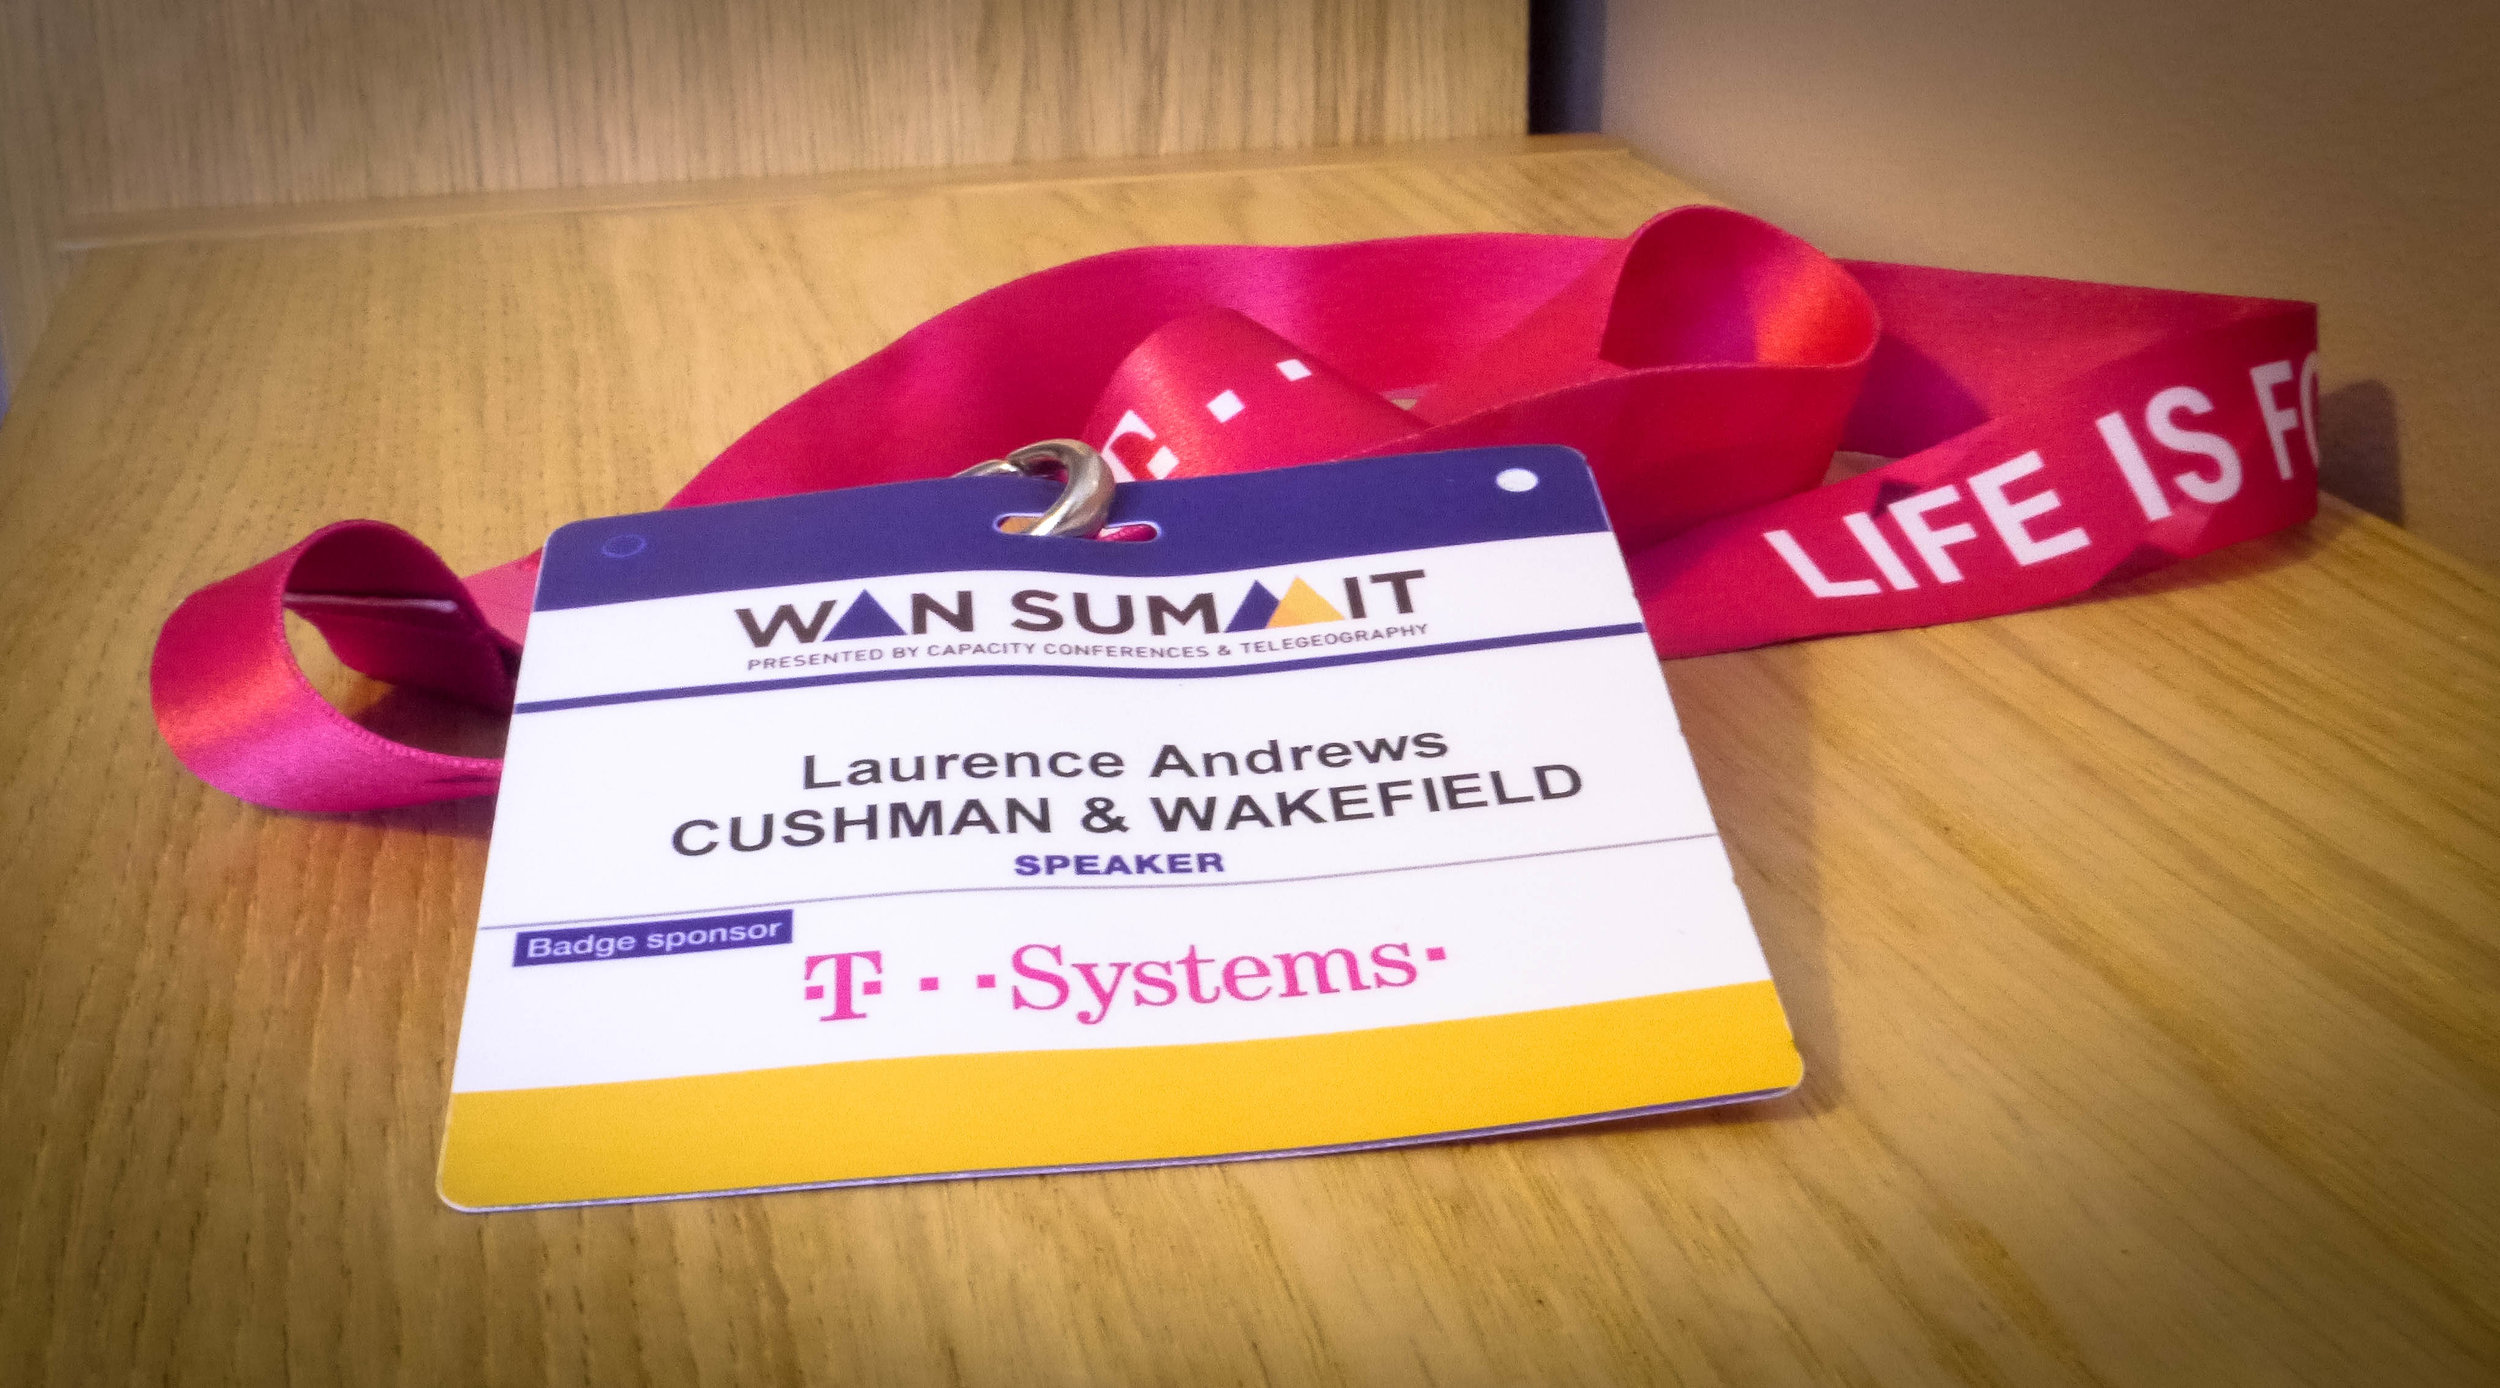 My badge for WAN Summit London, 2017